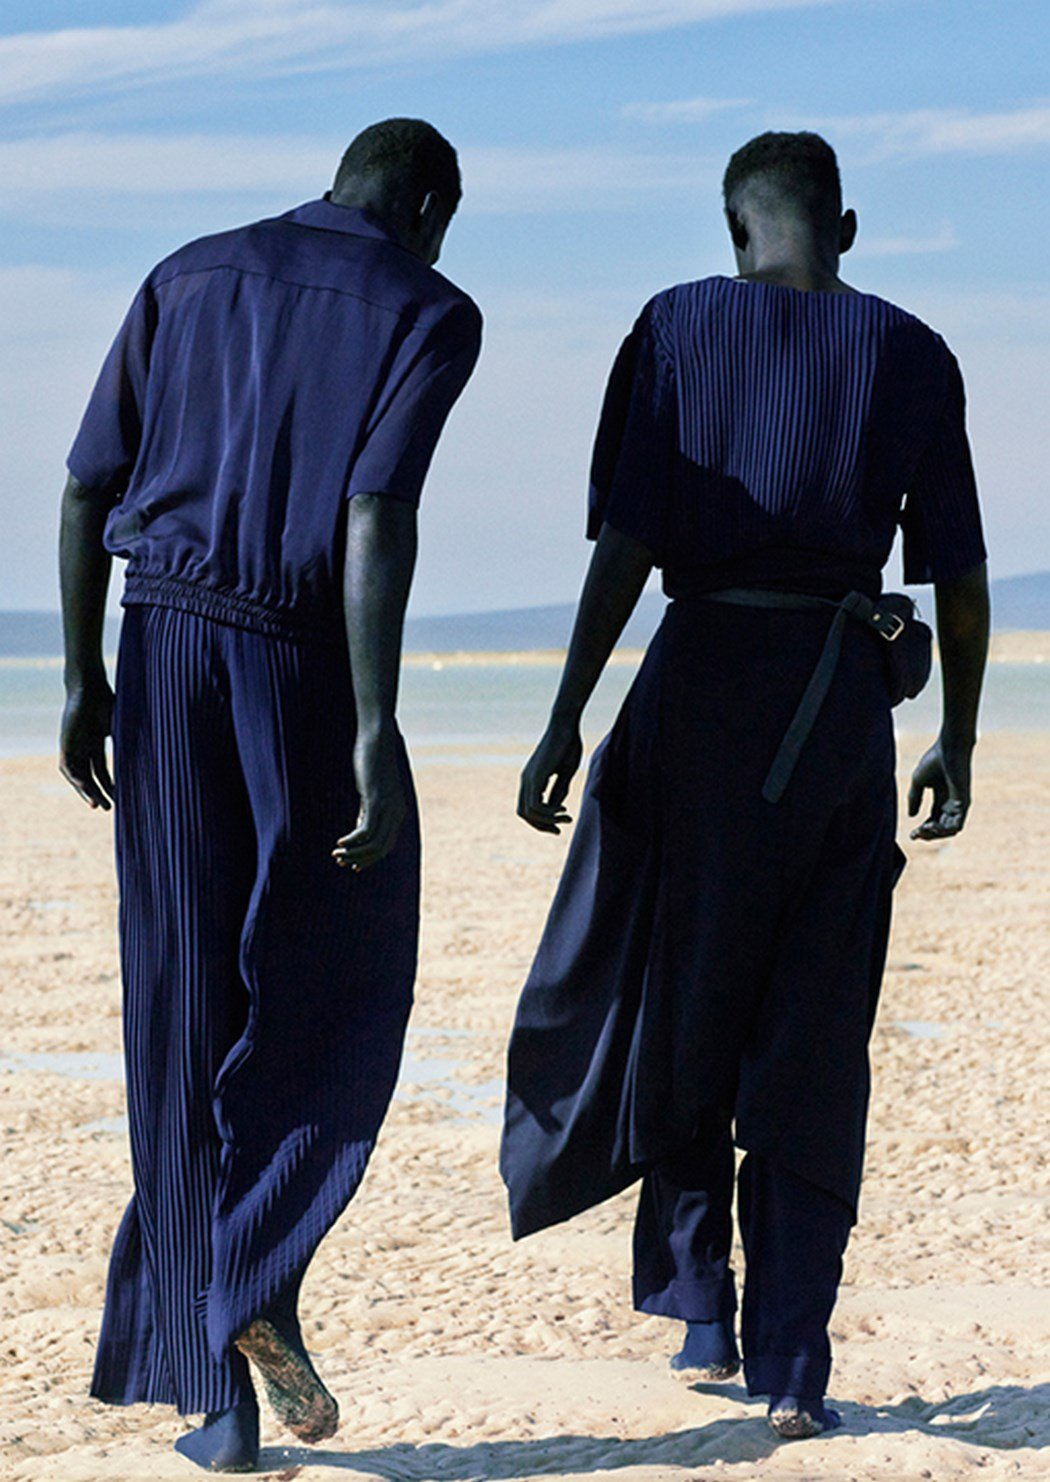 Lukhanyo Mdingi_fashion (2)